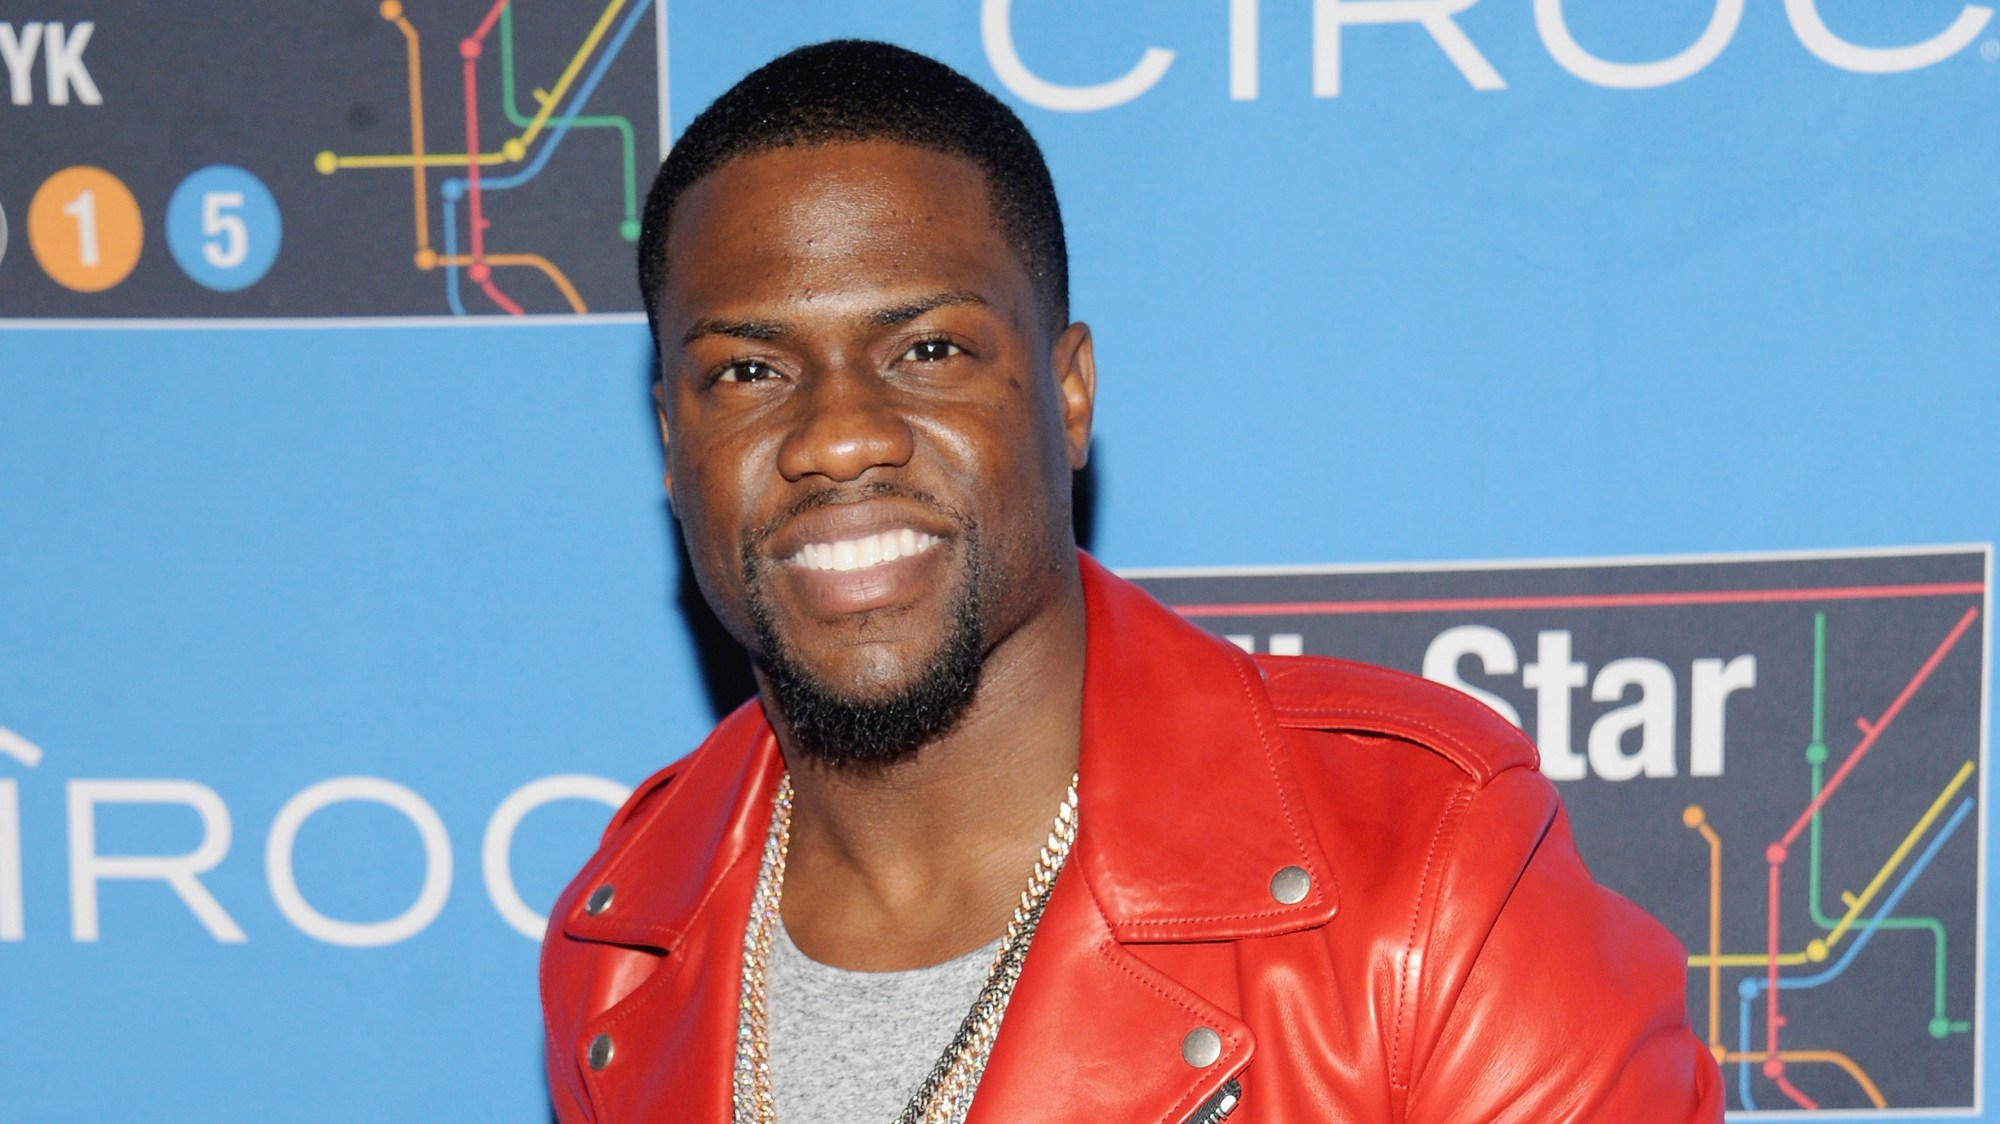 Kevin Hart's 25 Things